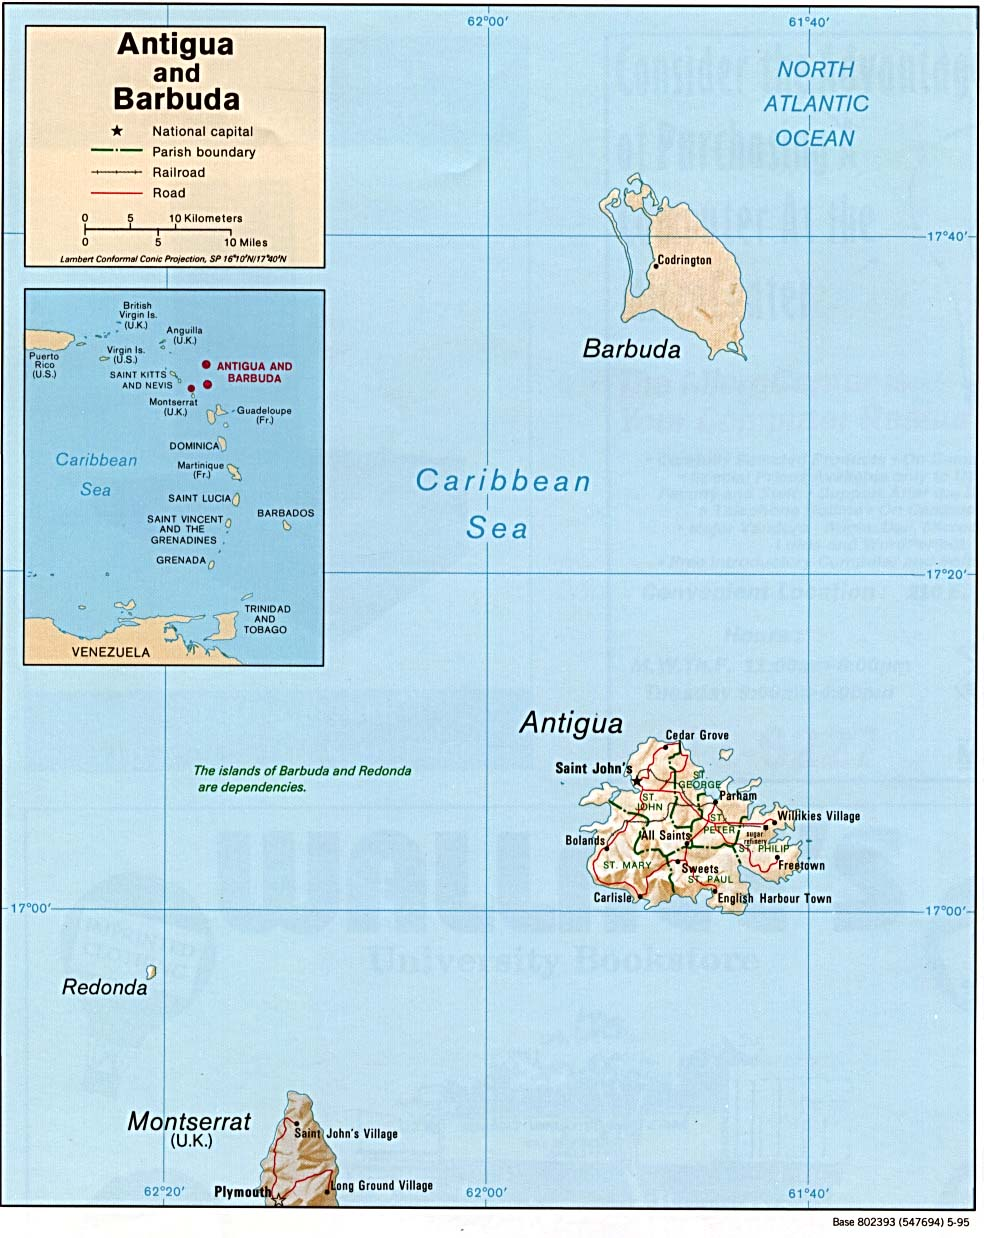 Map Antigua and Barbuda (Relief Map) : Worldofmaps.net - online Maps ...